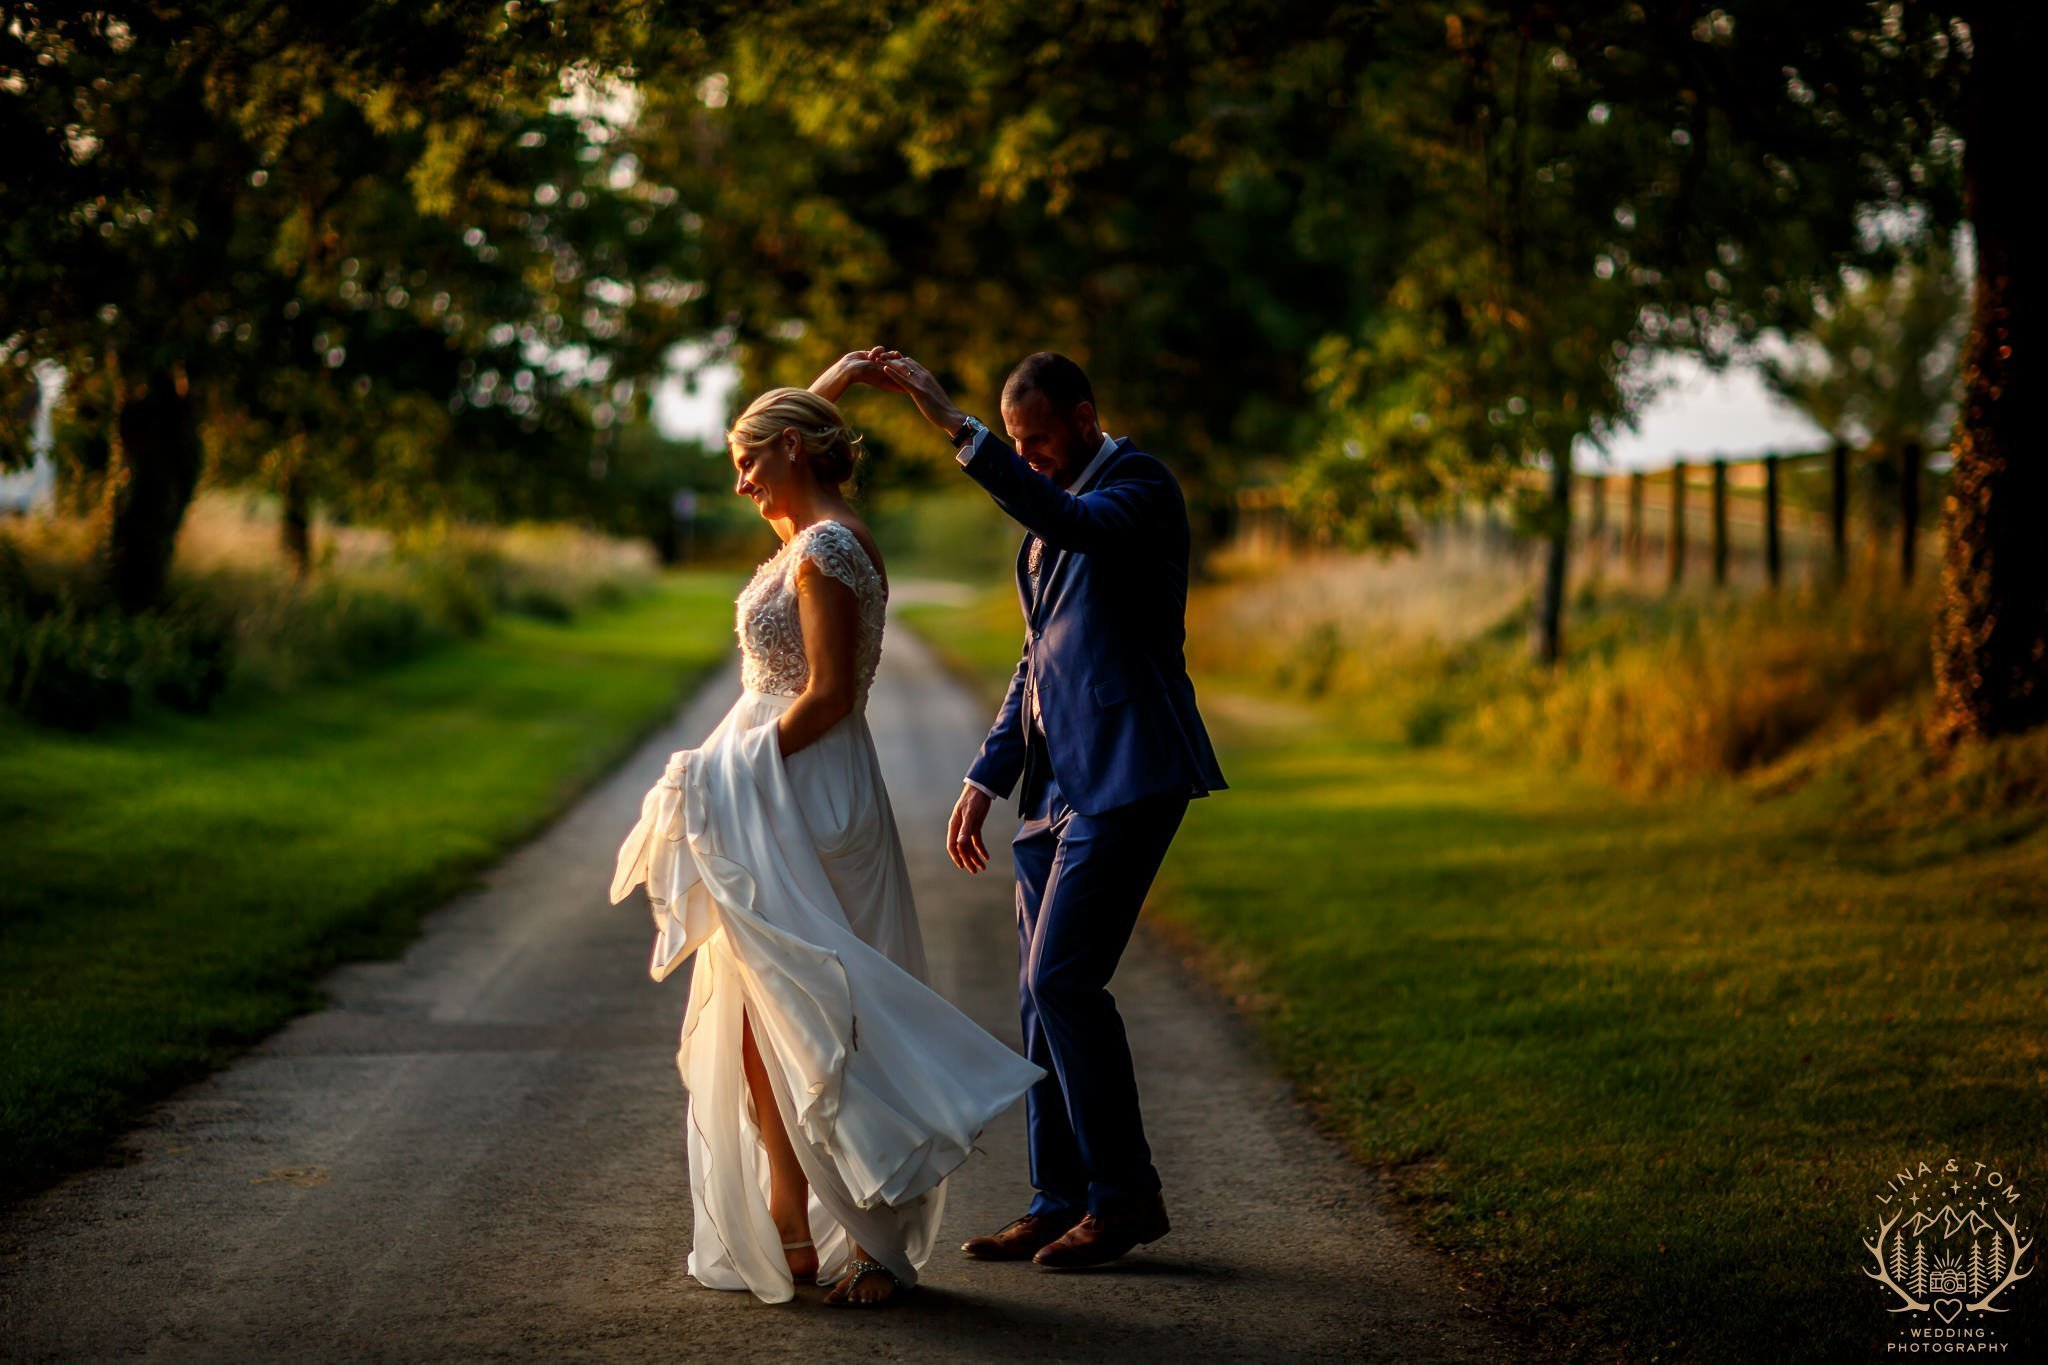 The Granary Estates Wedding Photography by Lina and Tom